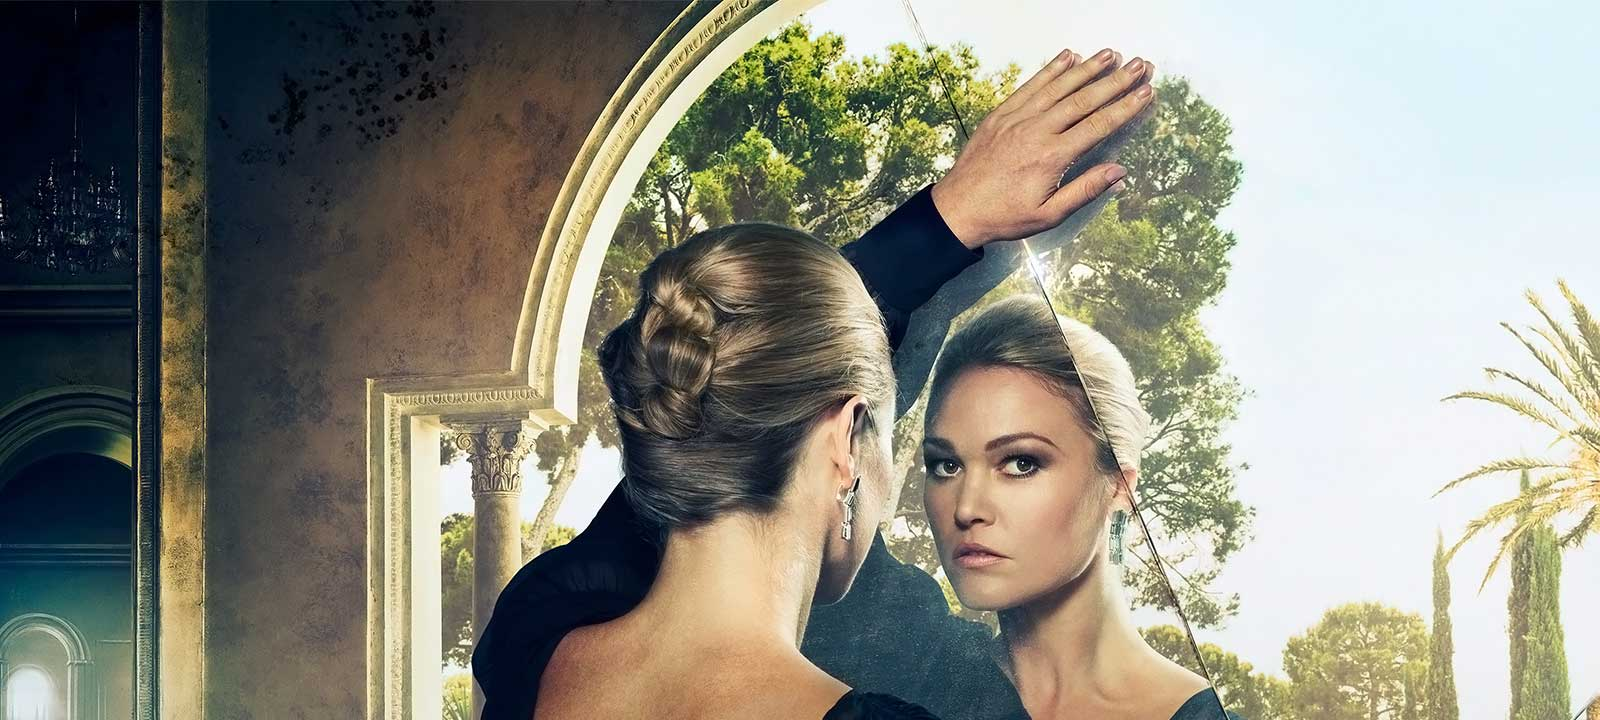 riviera-season-2-S2-key-art-800x600_MobileWeb_HomeHero